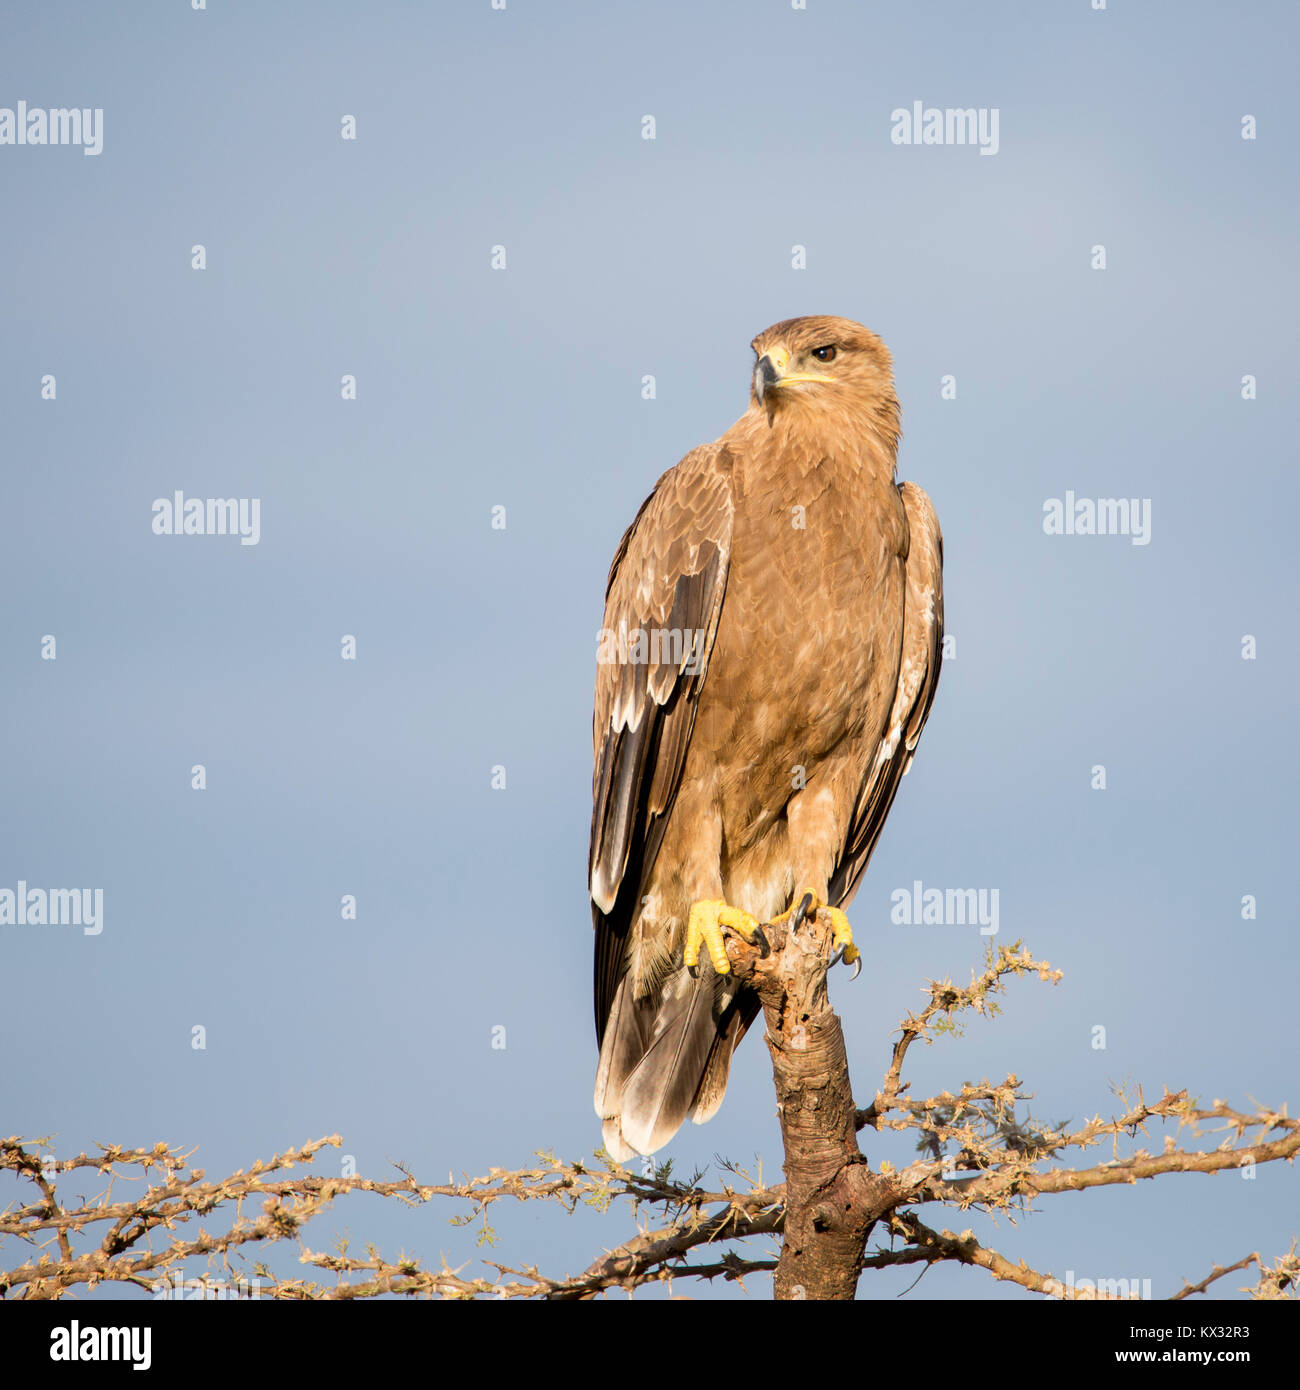 A Tawny Eagle perched on top ogf a dead tree, looking and hunting, Valley camp Mara Naboisho conservancy Kenya Africa Stock Photo